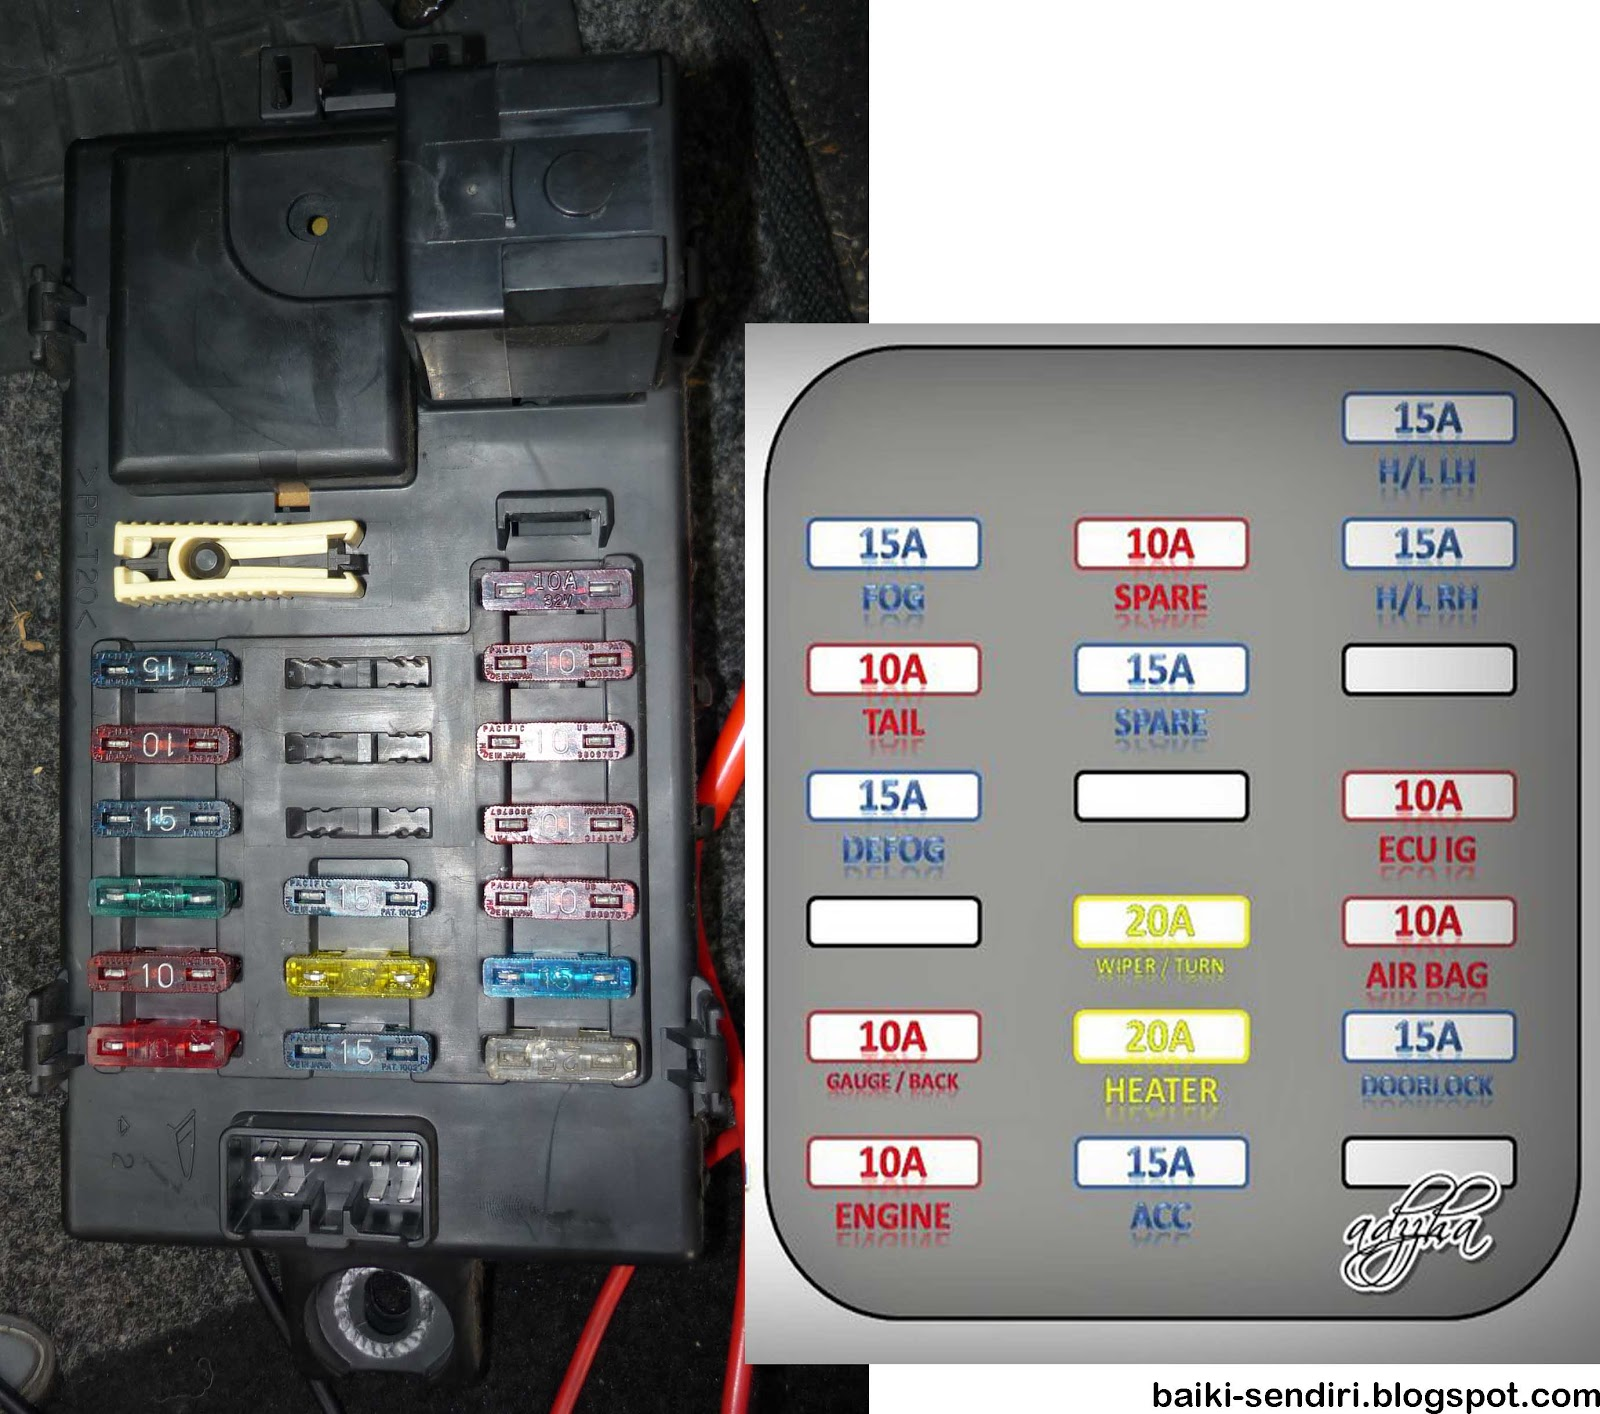 daihatsu charade fuse box location diy fix on your own daihatsu l7 perodua kelisa daihatsu yrv [ 1600 x 1414 Pixel ]